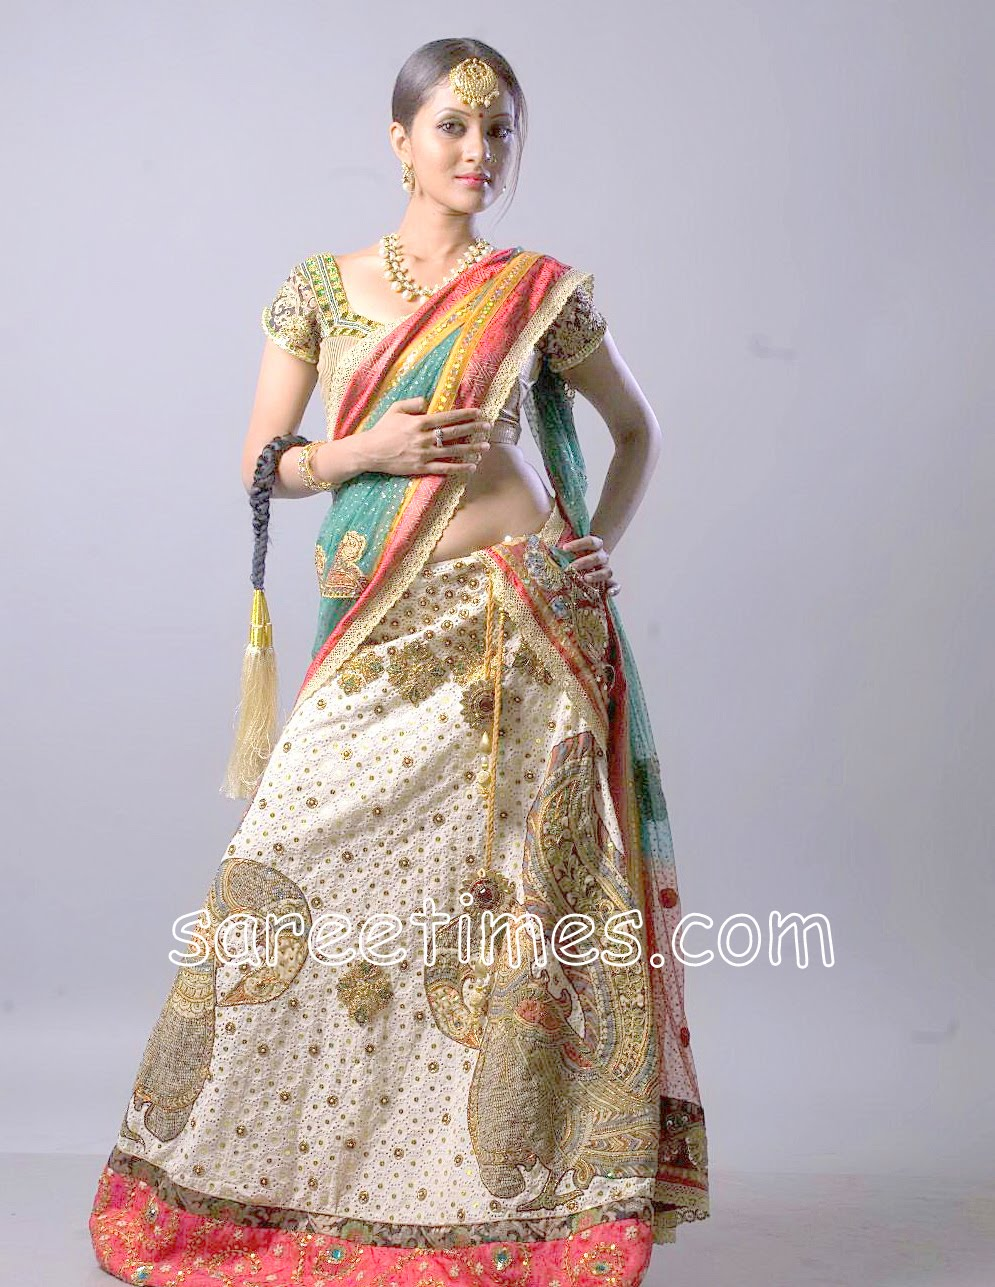 Half Saree Designers in Hyderabad http://www.sareetimes.com/2010/04/indian-designer-half-saree.html